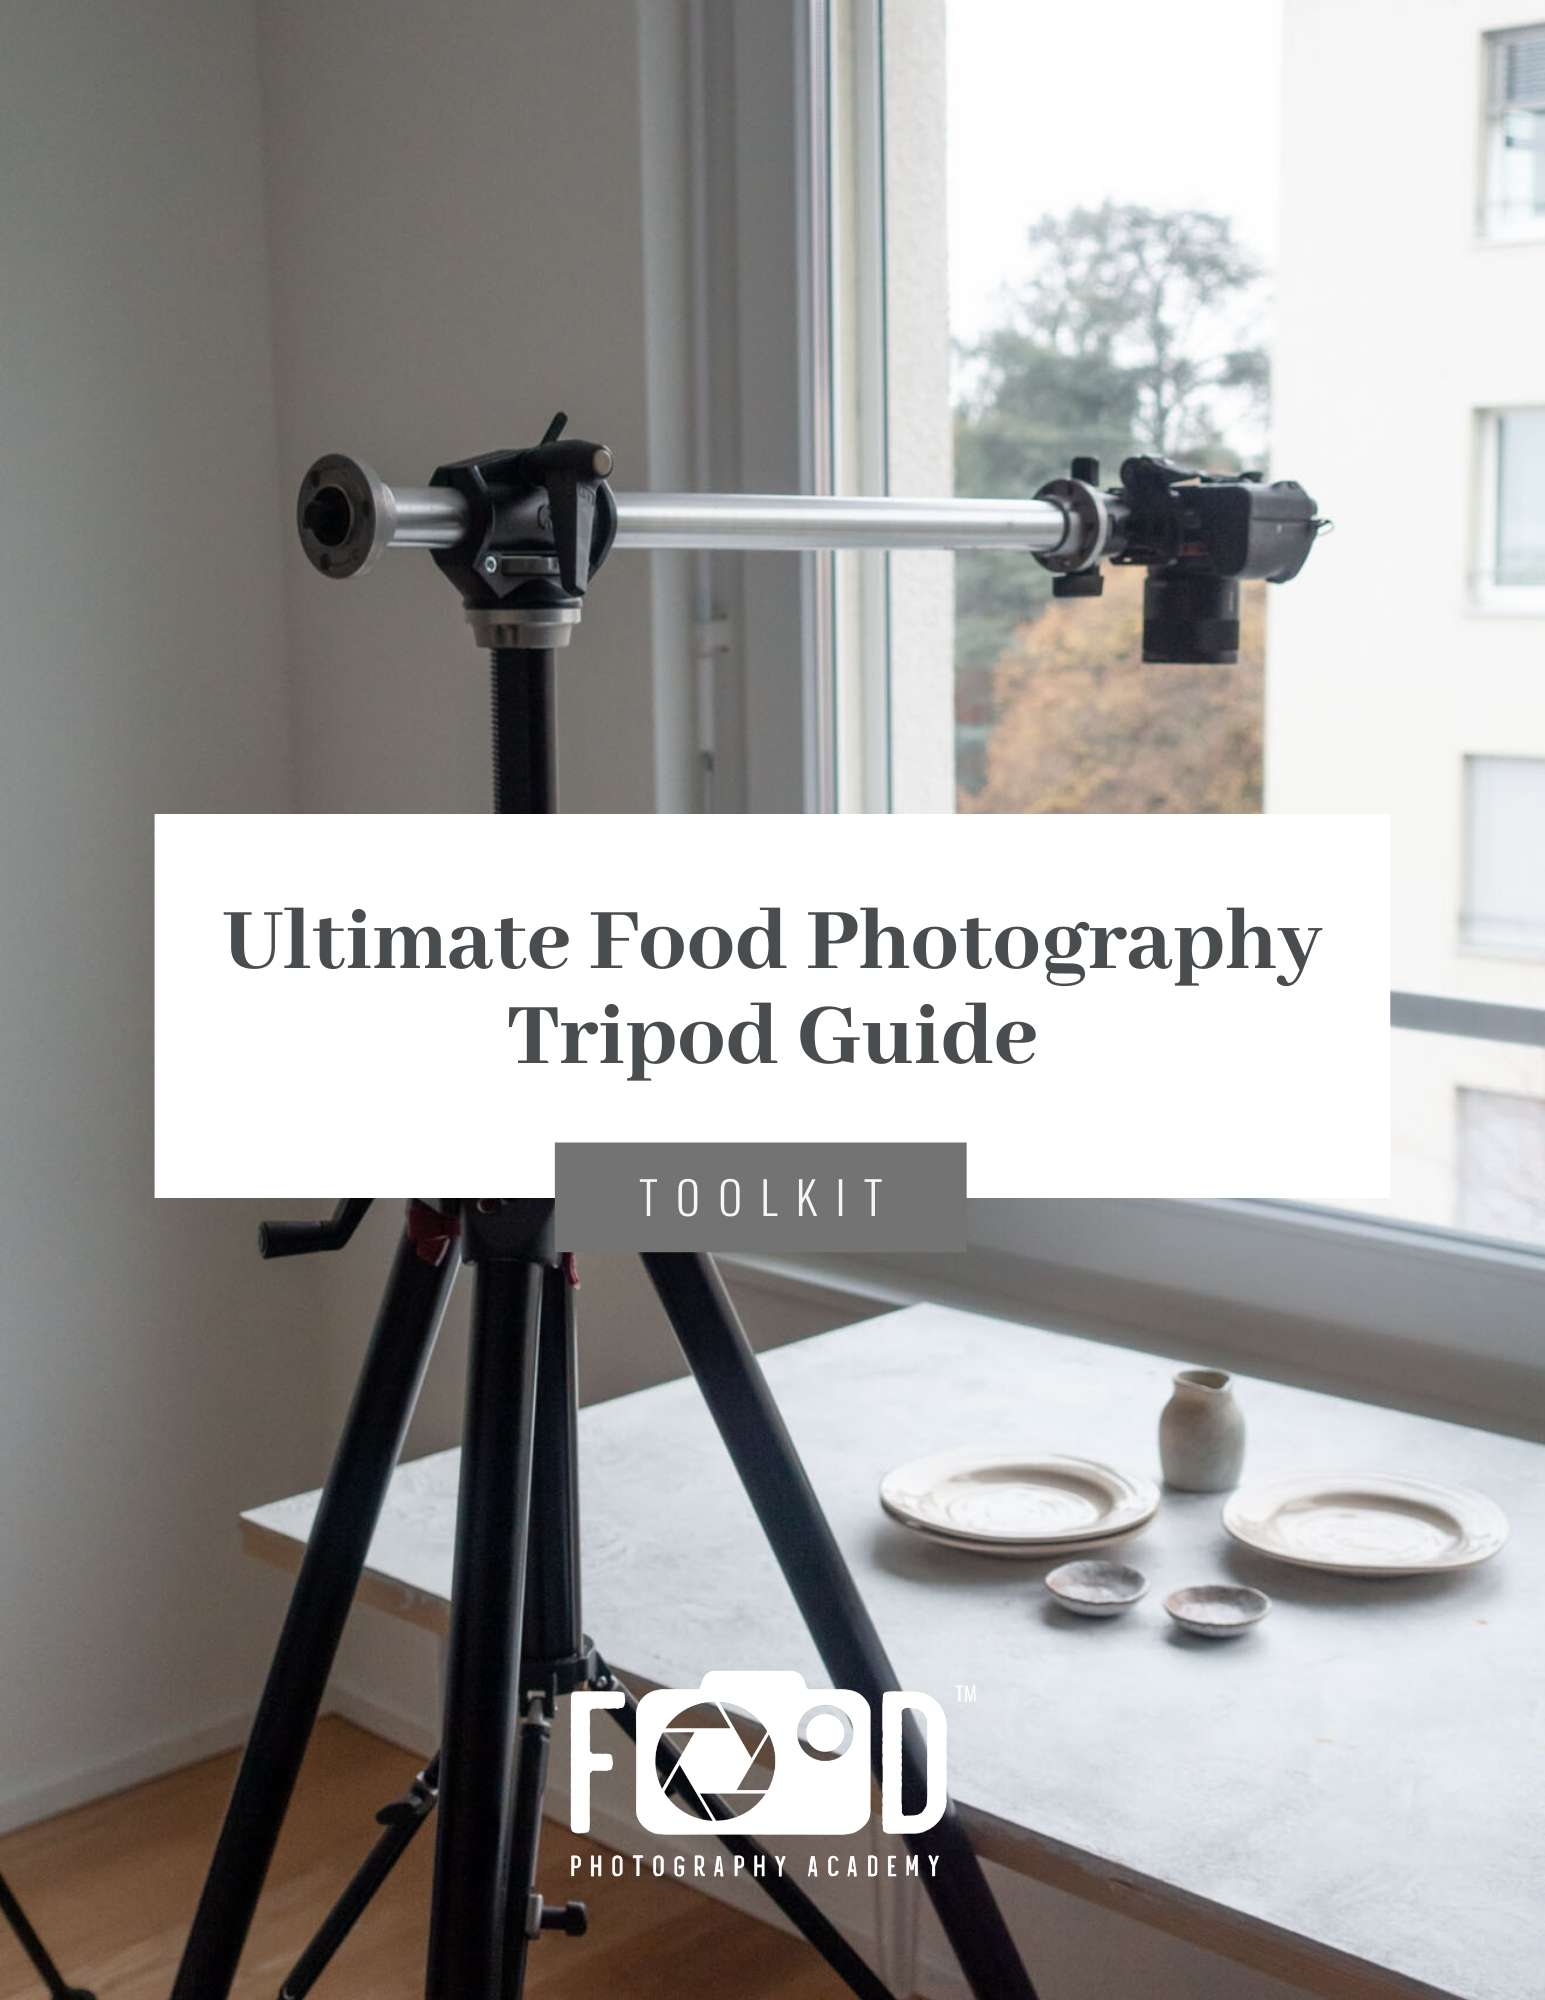 Ultimate Food Photography Tripod Toolkit